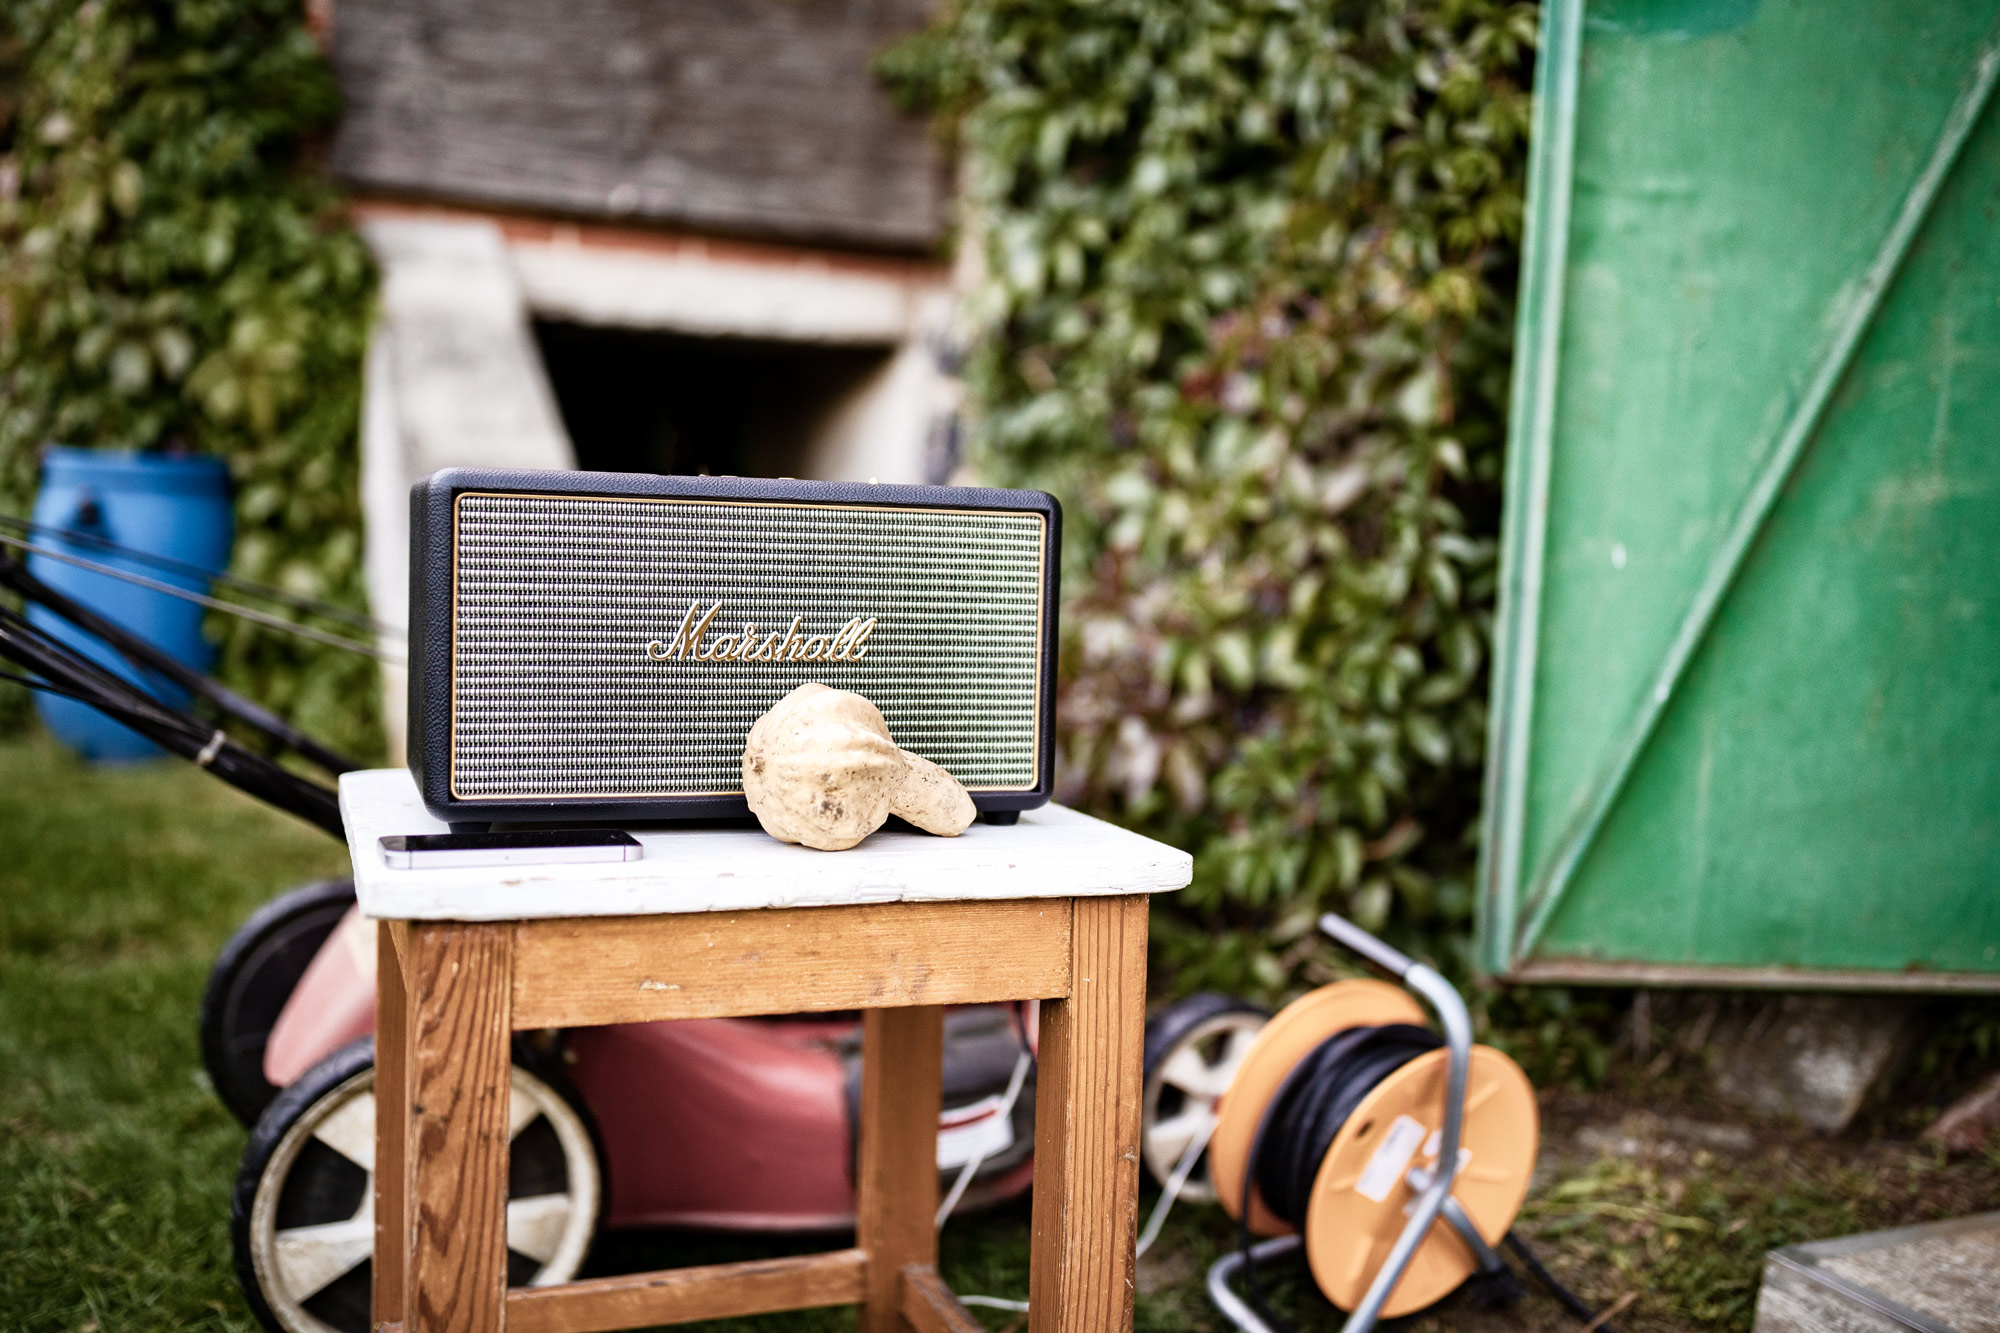 Building photographic backgrounds. A speaker/radio on a table in the garden with a mower blurred in the background.